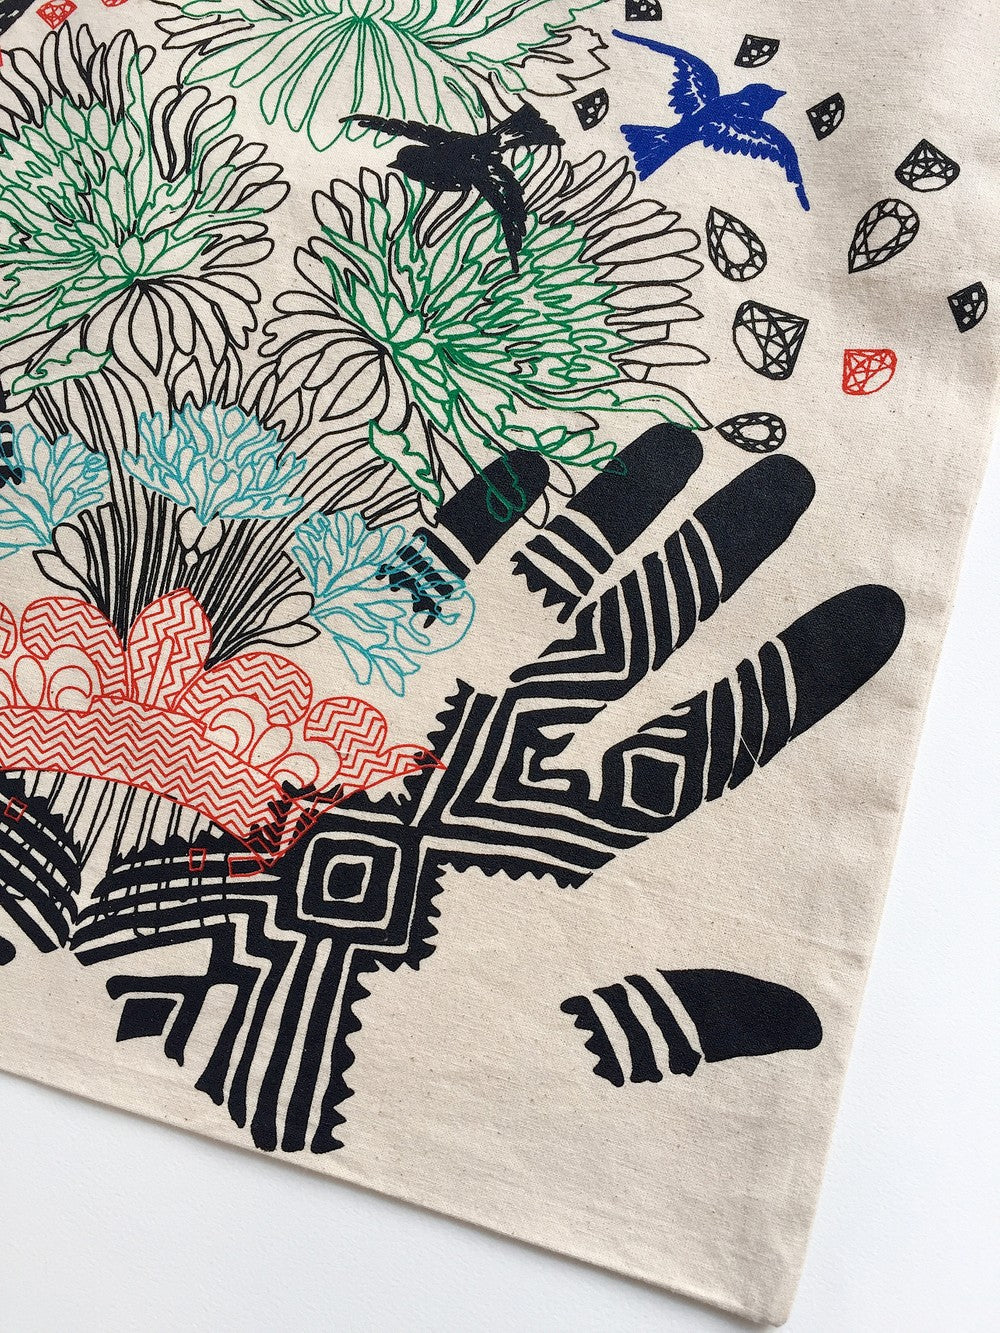 Tote Bag coton biologique imprimé main 40x45cm « Flowered Henna Tattoo »